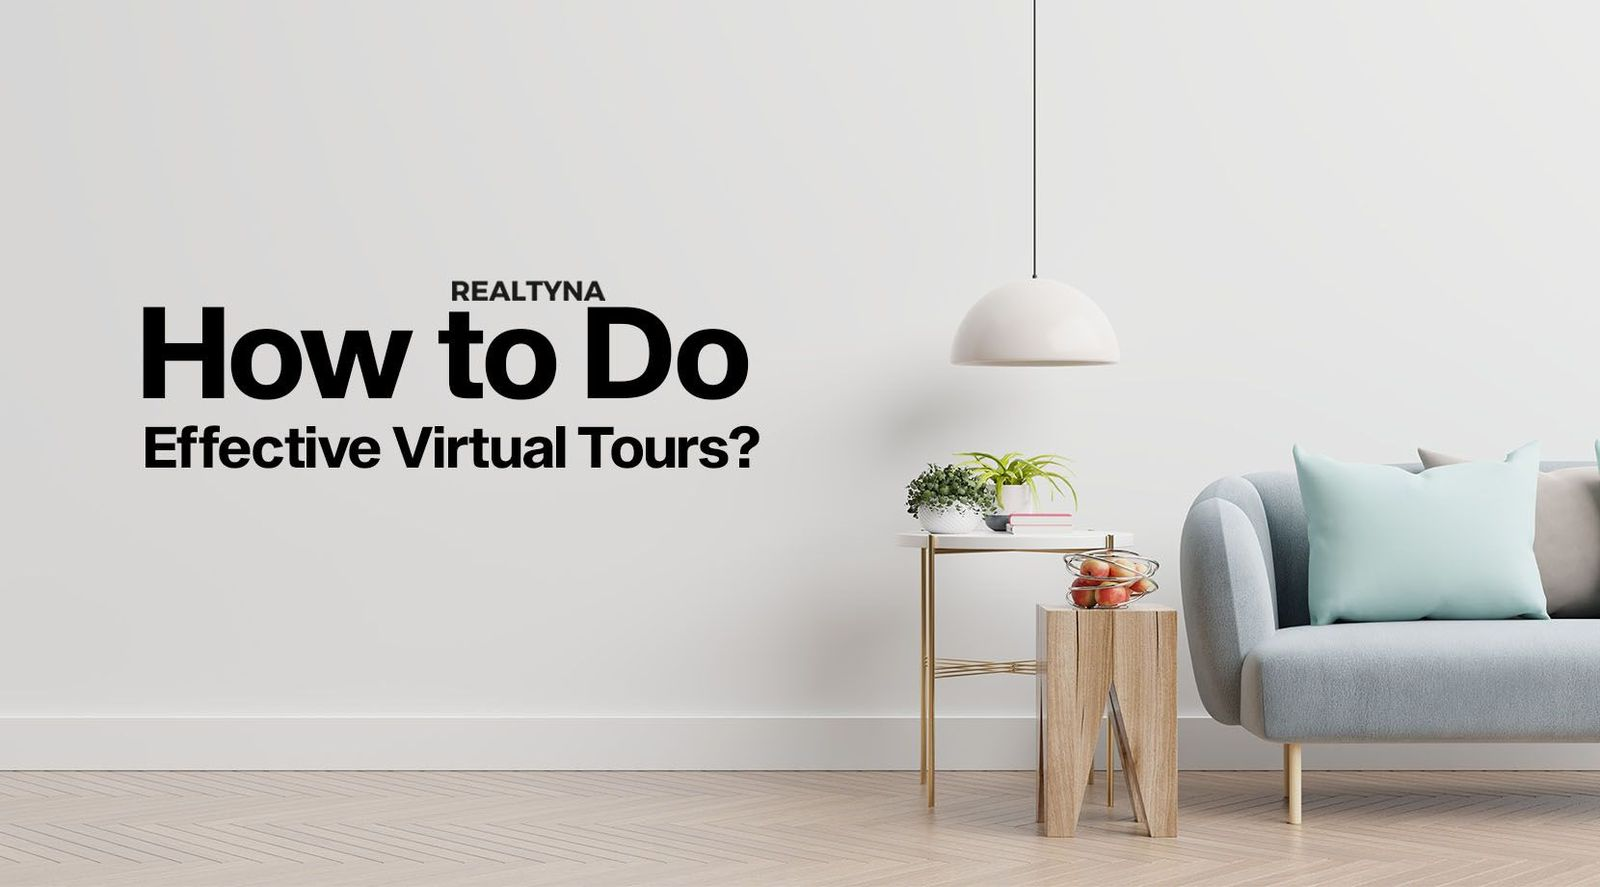 How to Do Effective Virtual Tours?